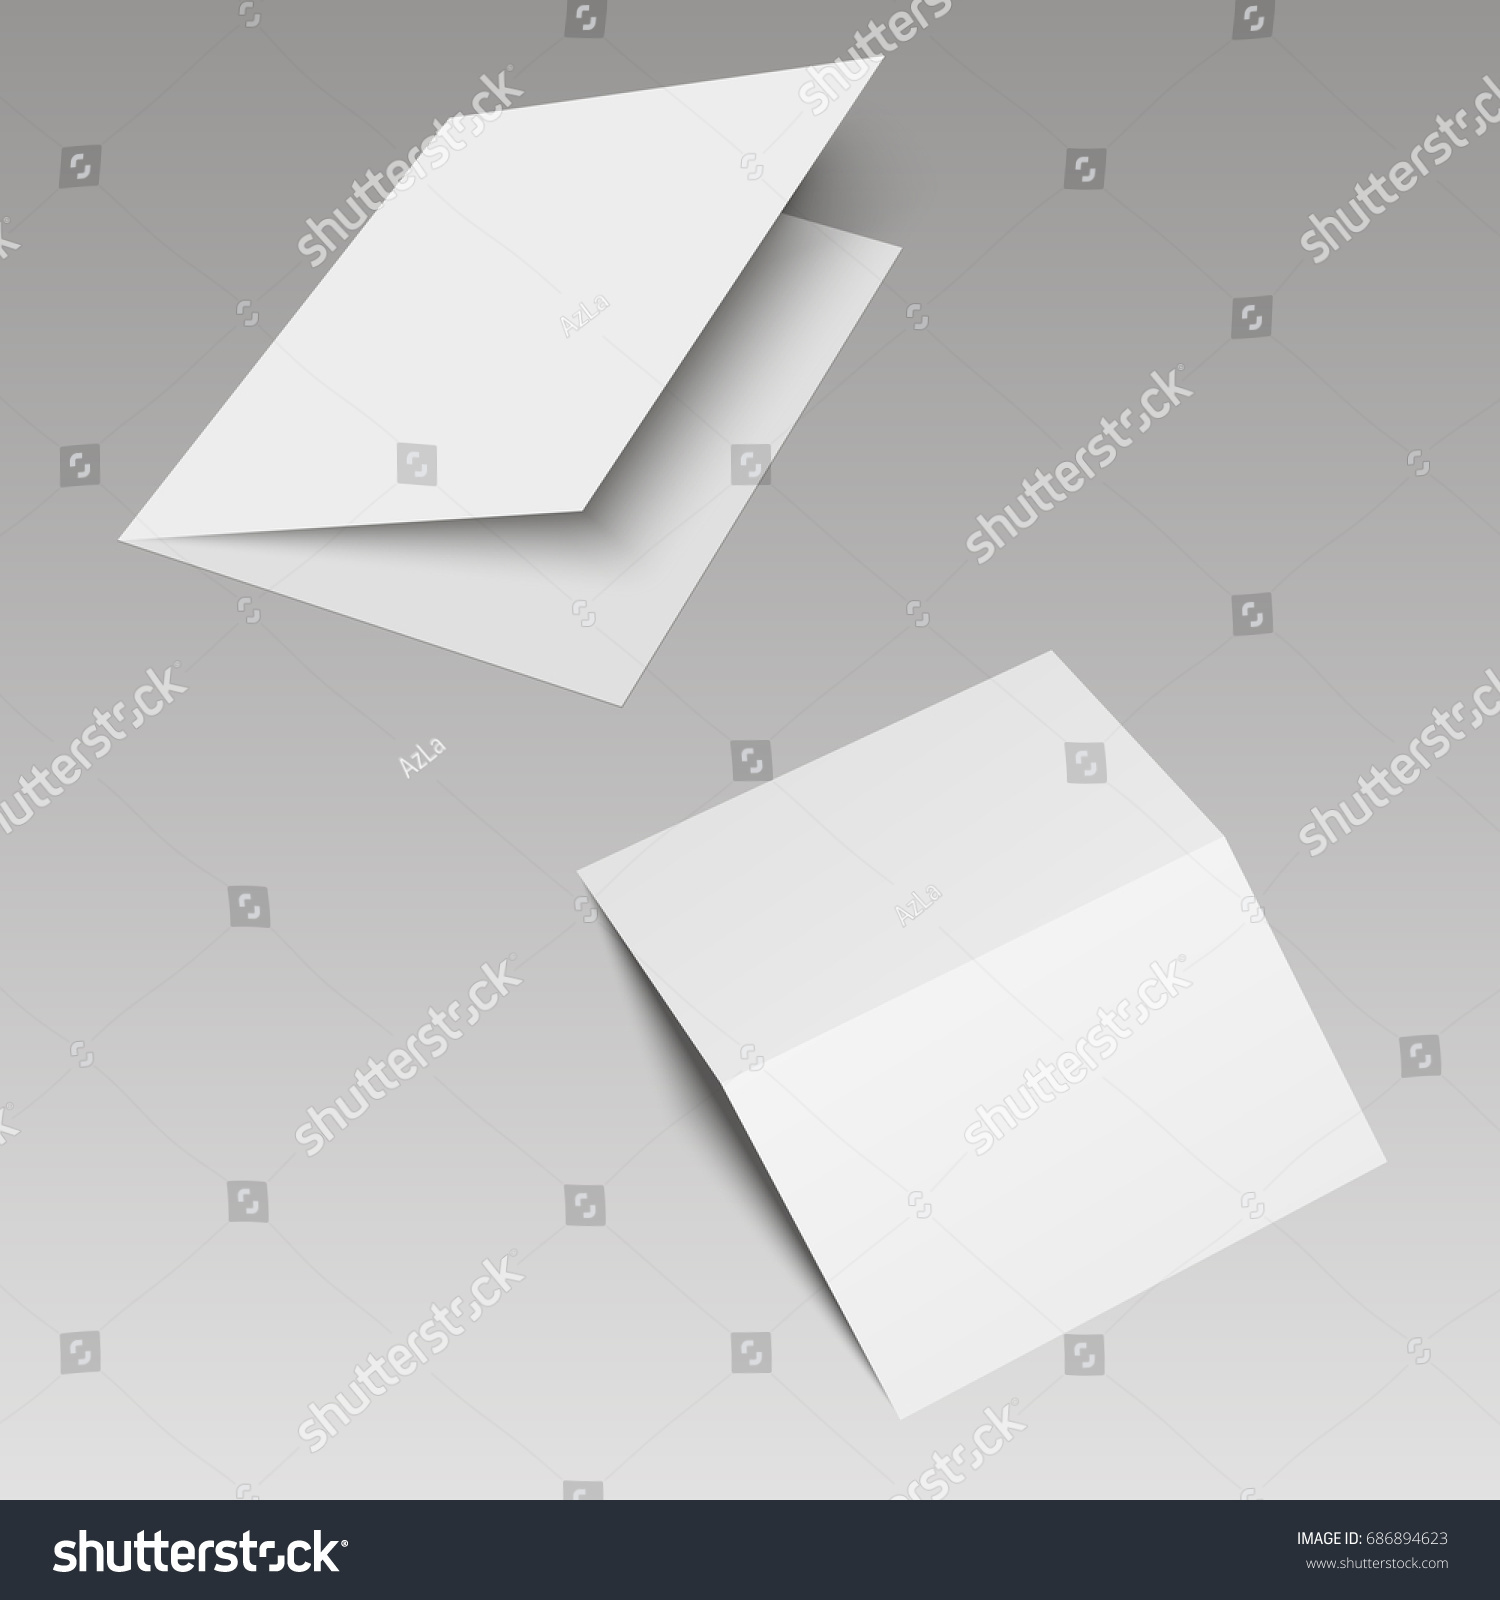 Mockup Opened Magazine Journal Booklet Postcard Stock Vector ...